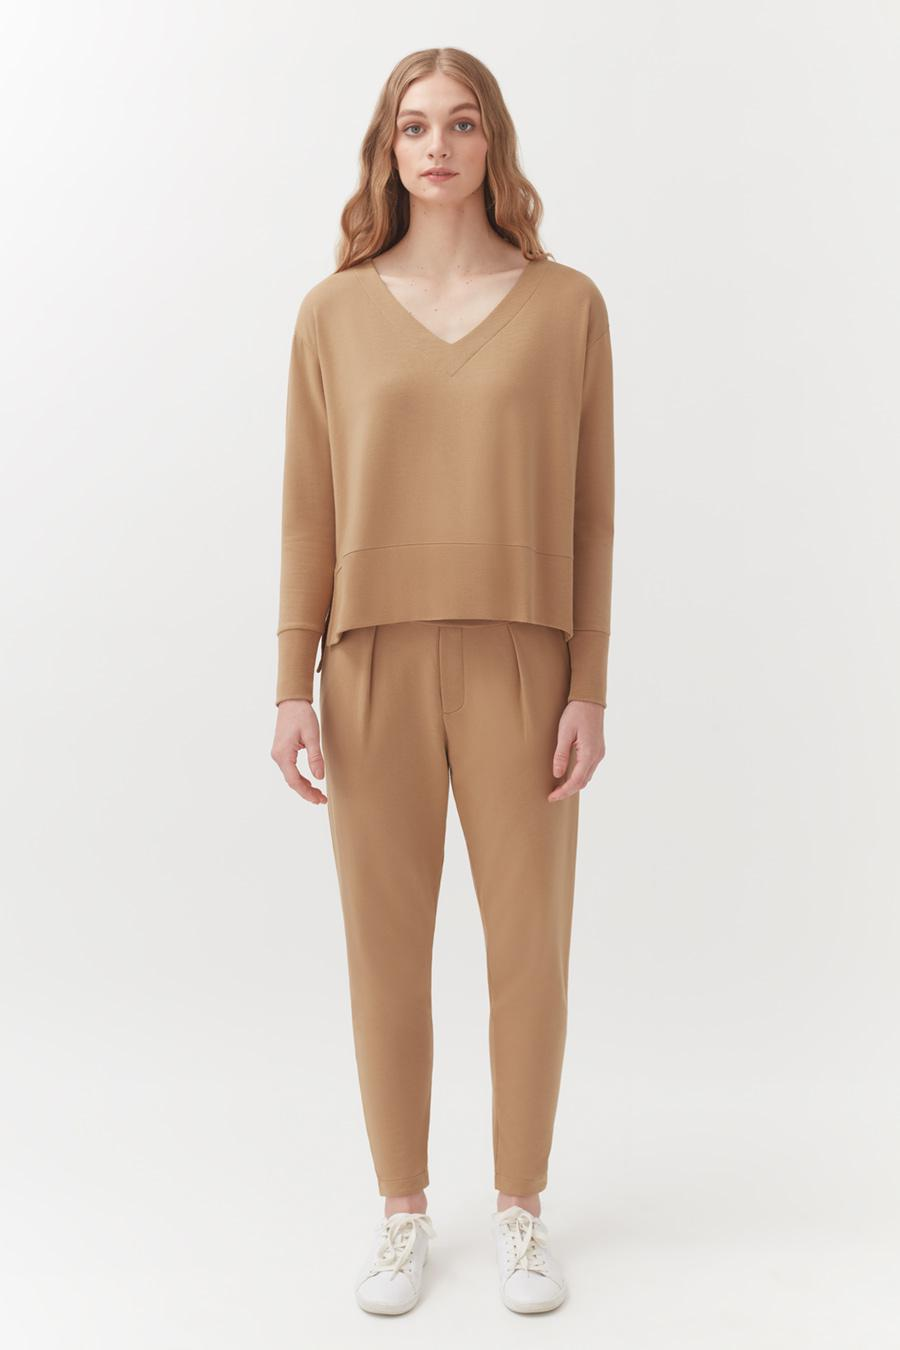 Women's French Terry Pleated Front Pant in Camel   Size: 1